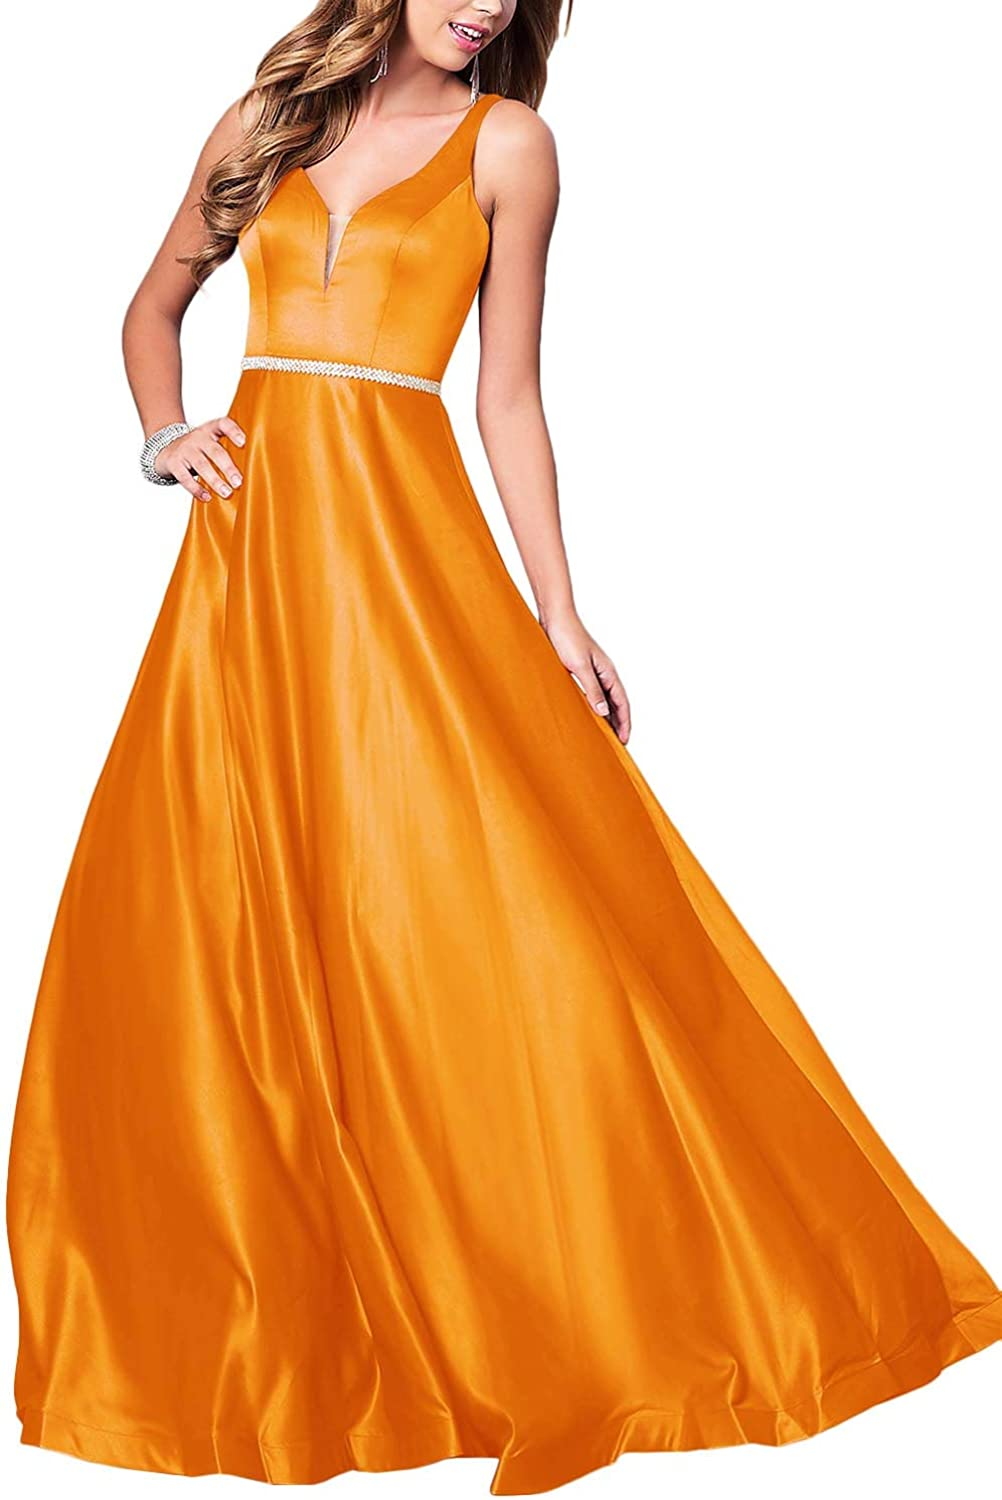 RTTUTED V Neckline Long Satin Prom Dress for Women with Pockets Formal Party Ball Gowns